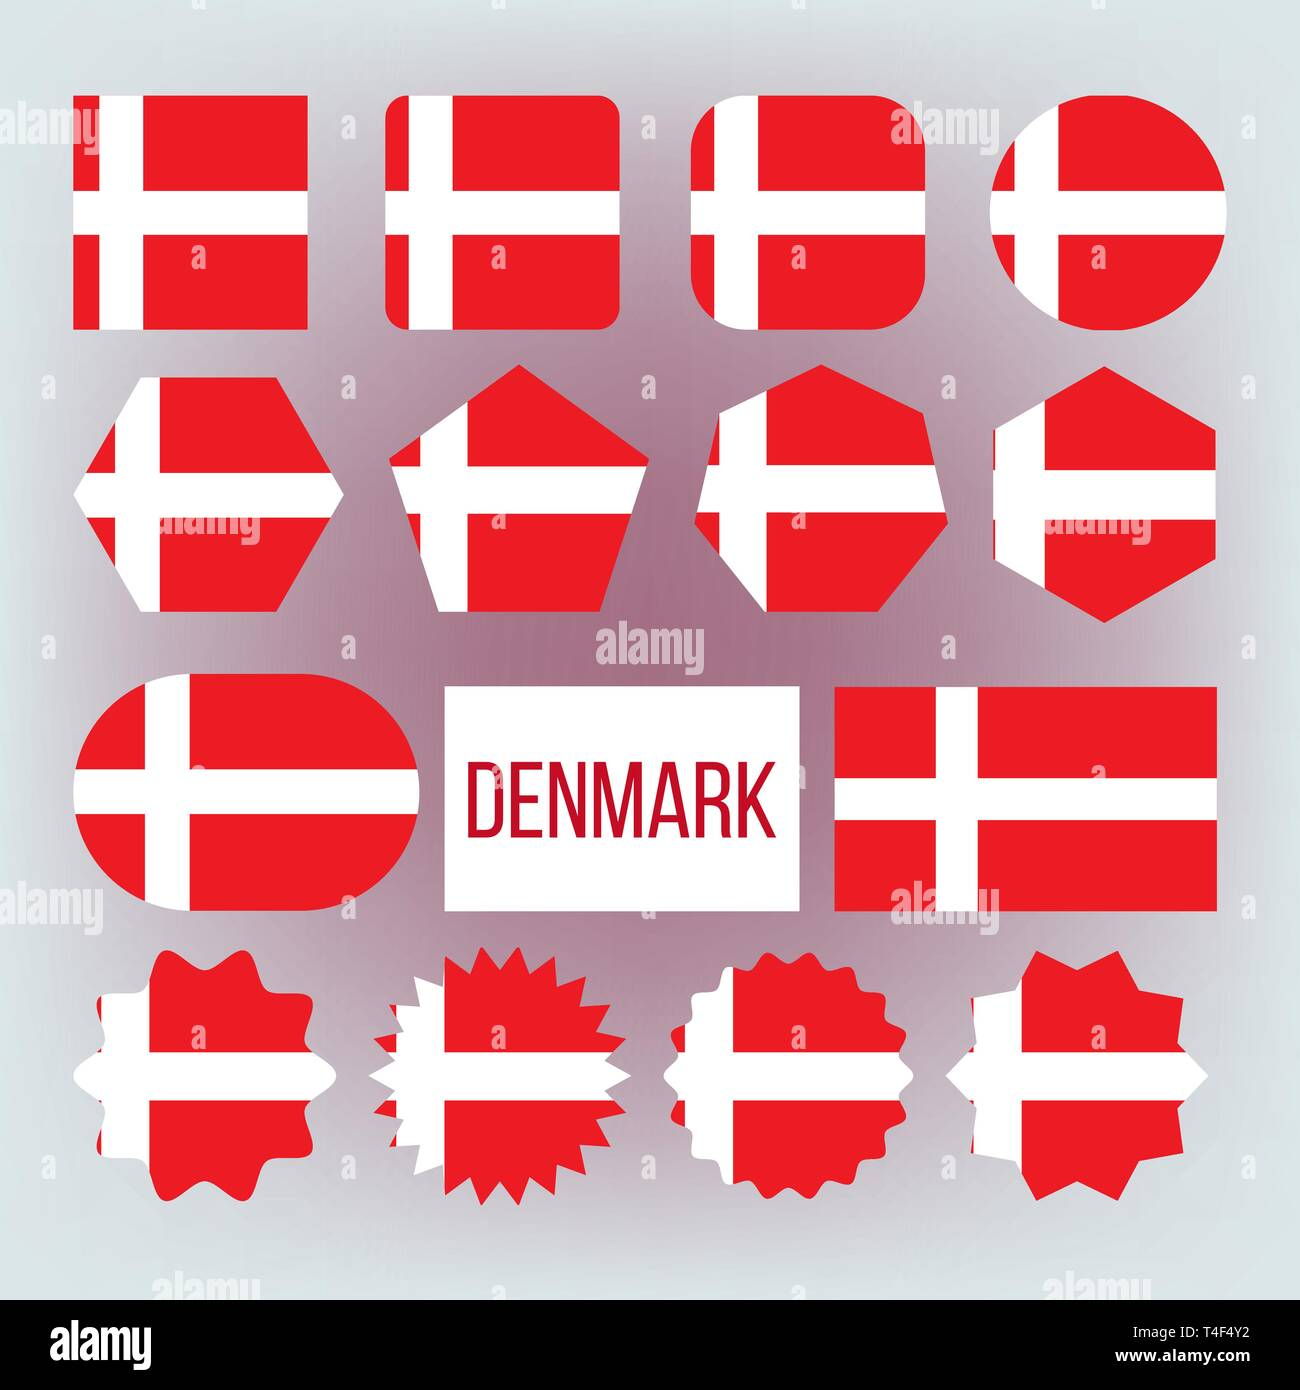 Danish National Colors, Insignia Vector Icons Set - Stock Vector